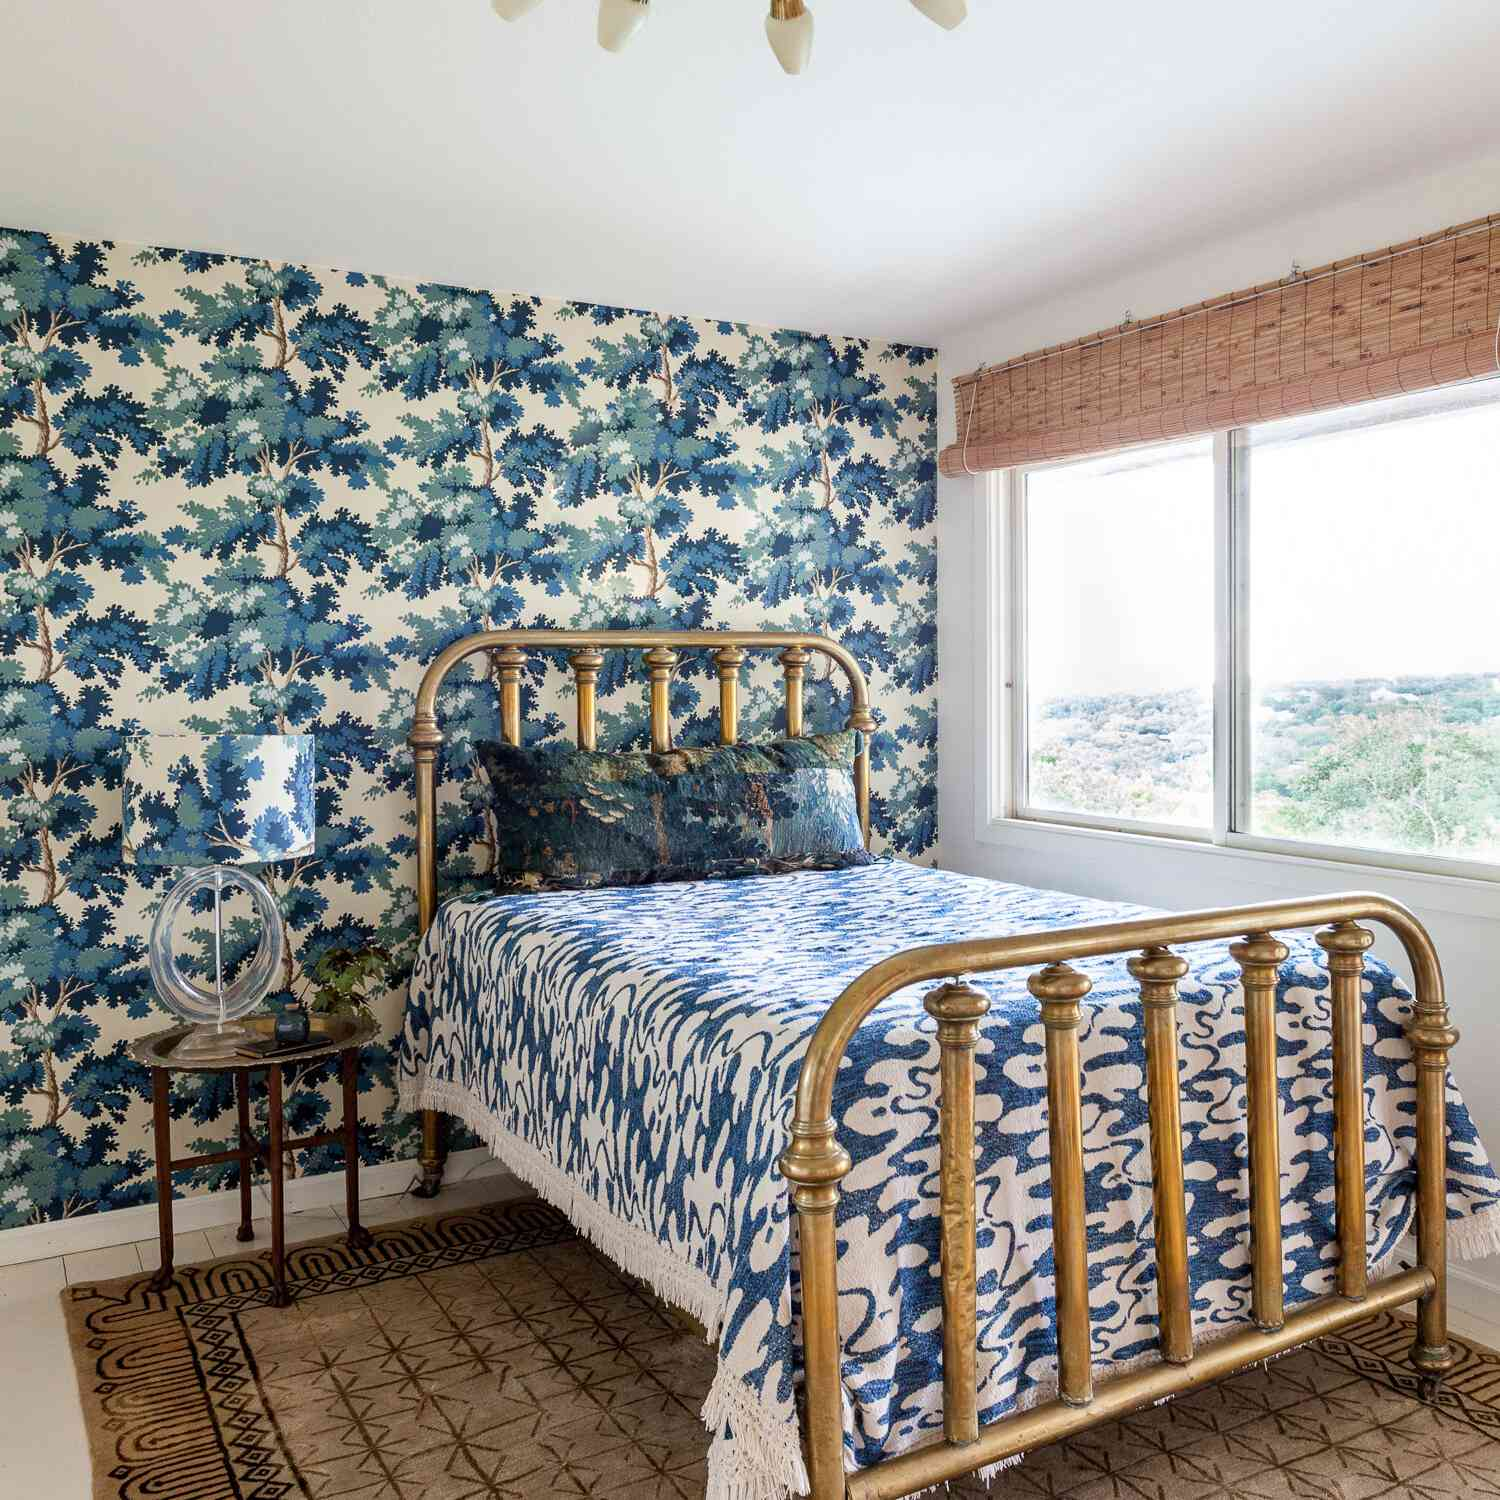 A bedroom with blue printed wallpaper and a matching lamp